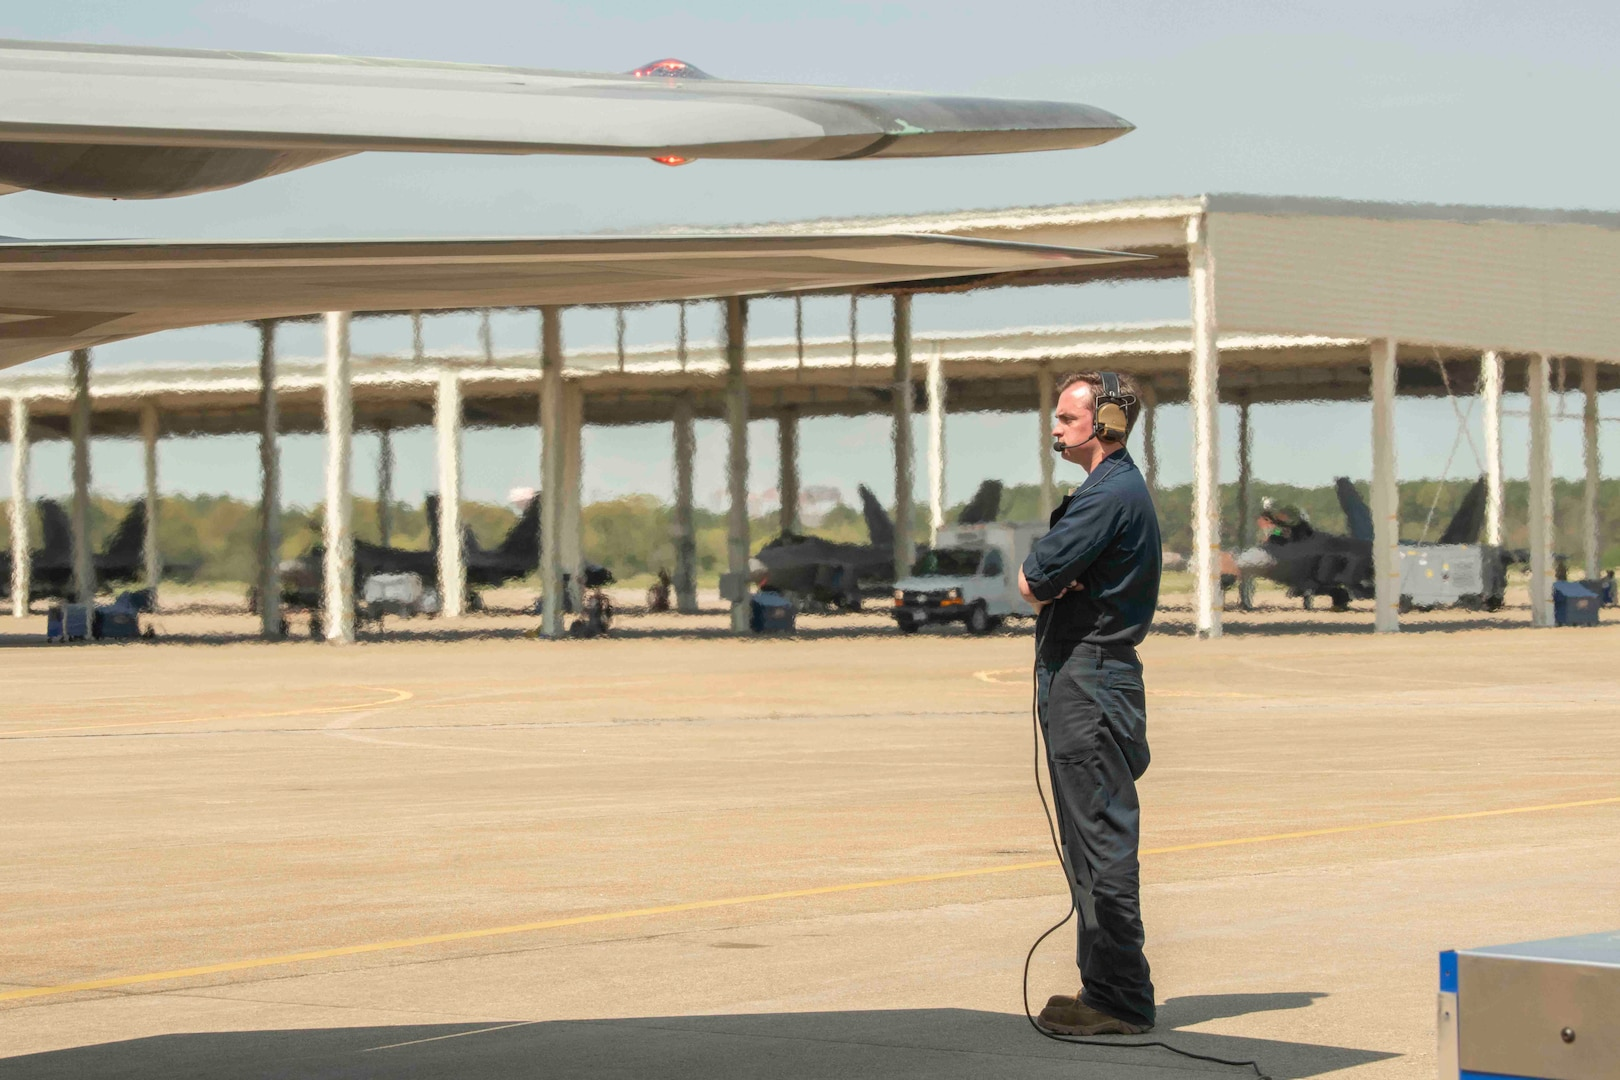 A crew chief looks on as an F-22 Raptor prepares to take flight